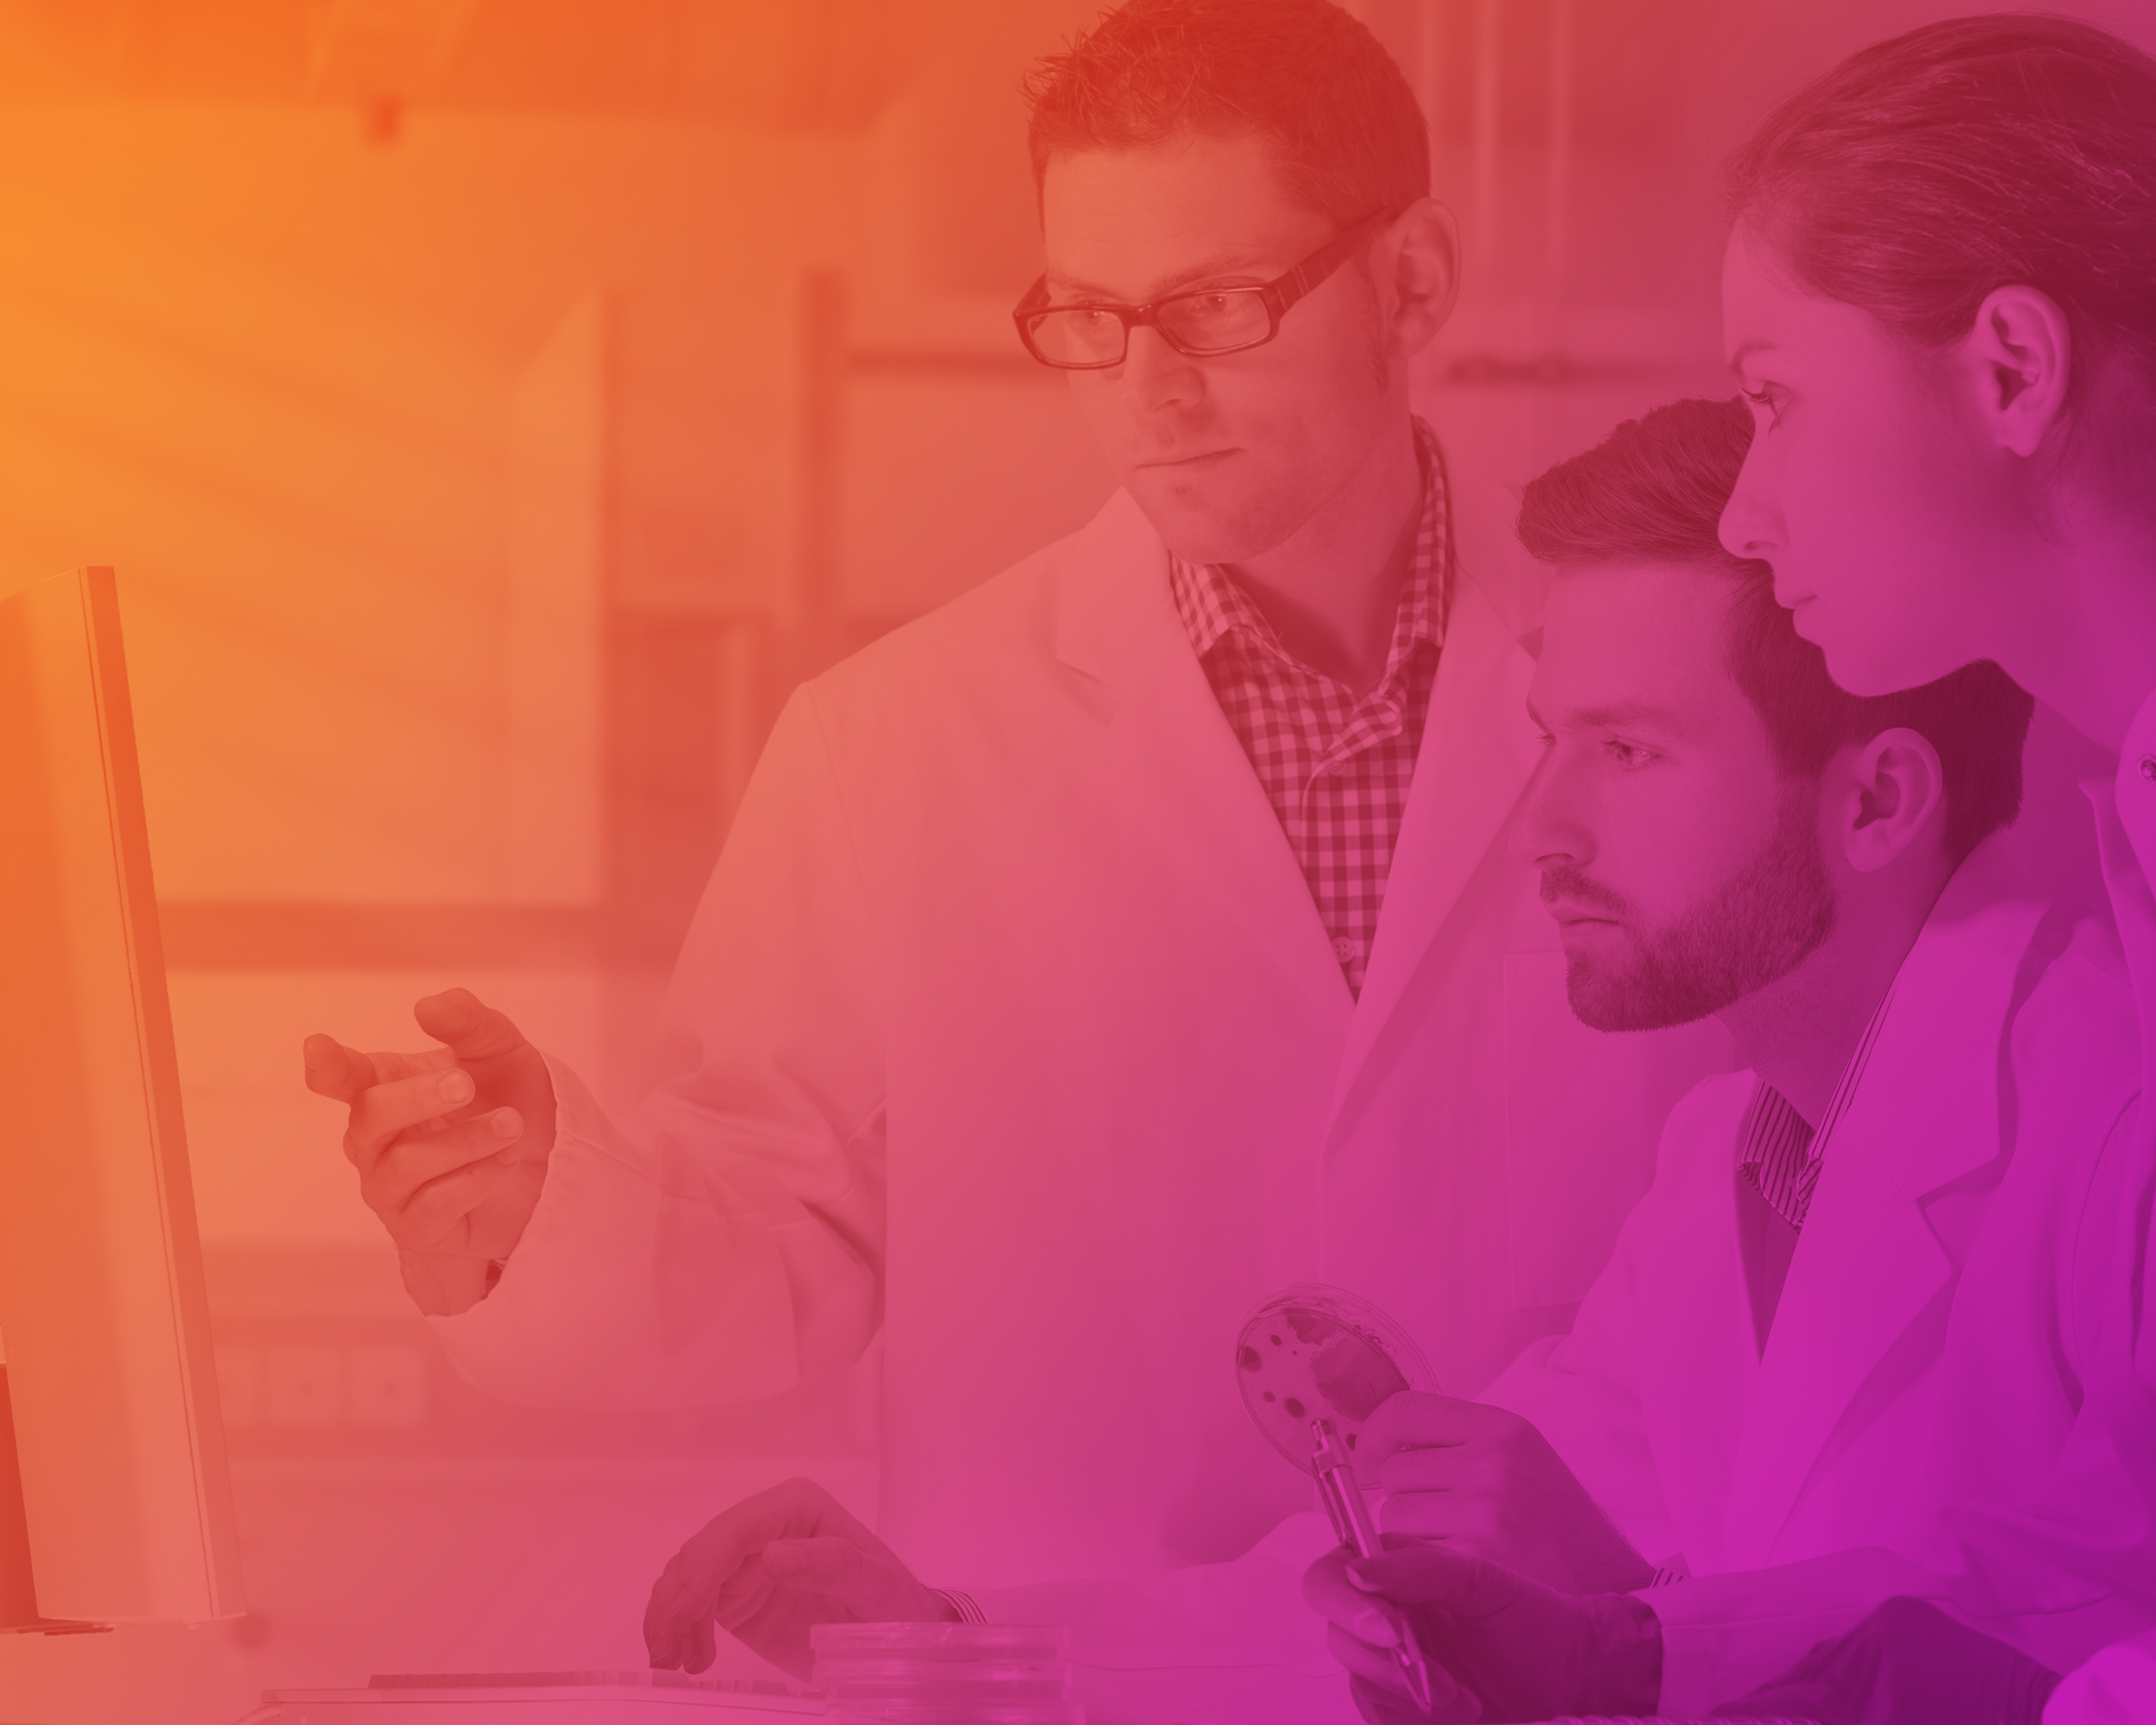 Clients - For over 20 years, we've been proud to work with many science-based companies including medical device, diagnostic technology, bioscience and scientific instrument manufacturers.Learn More